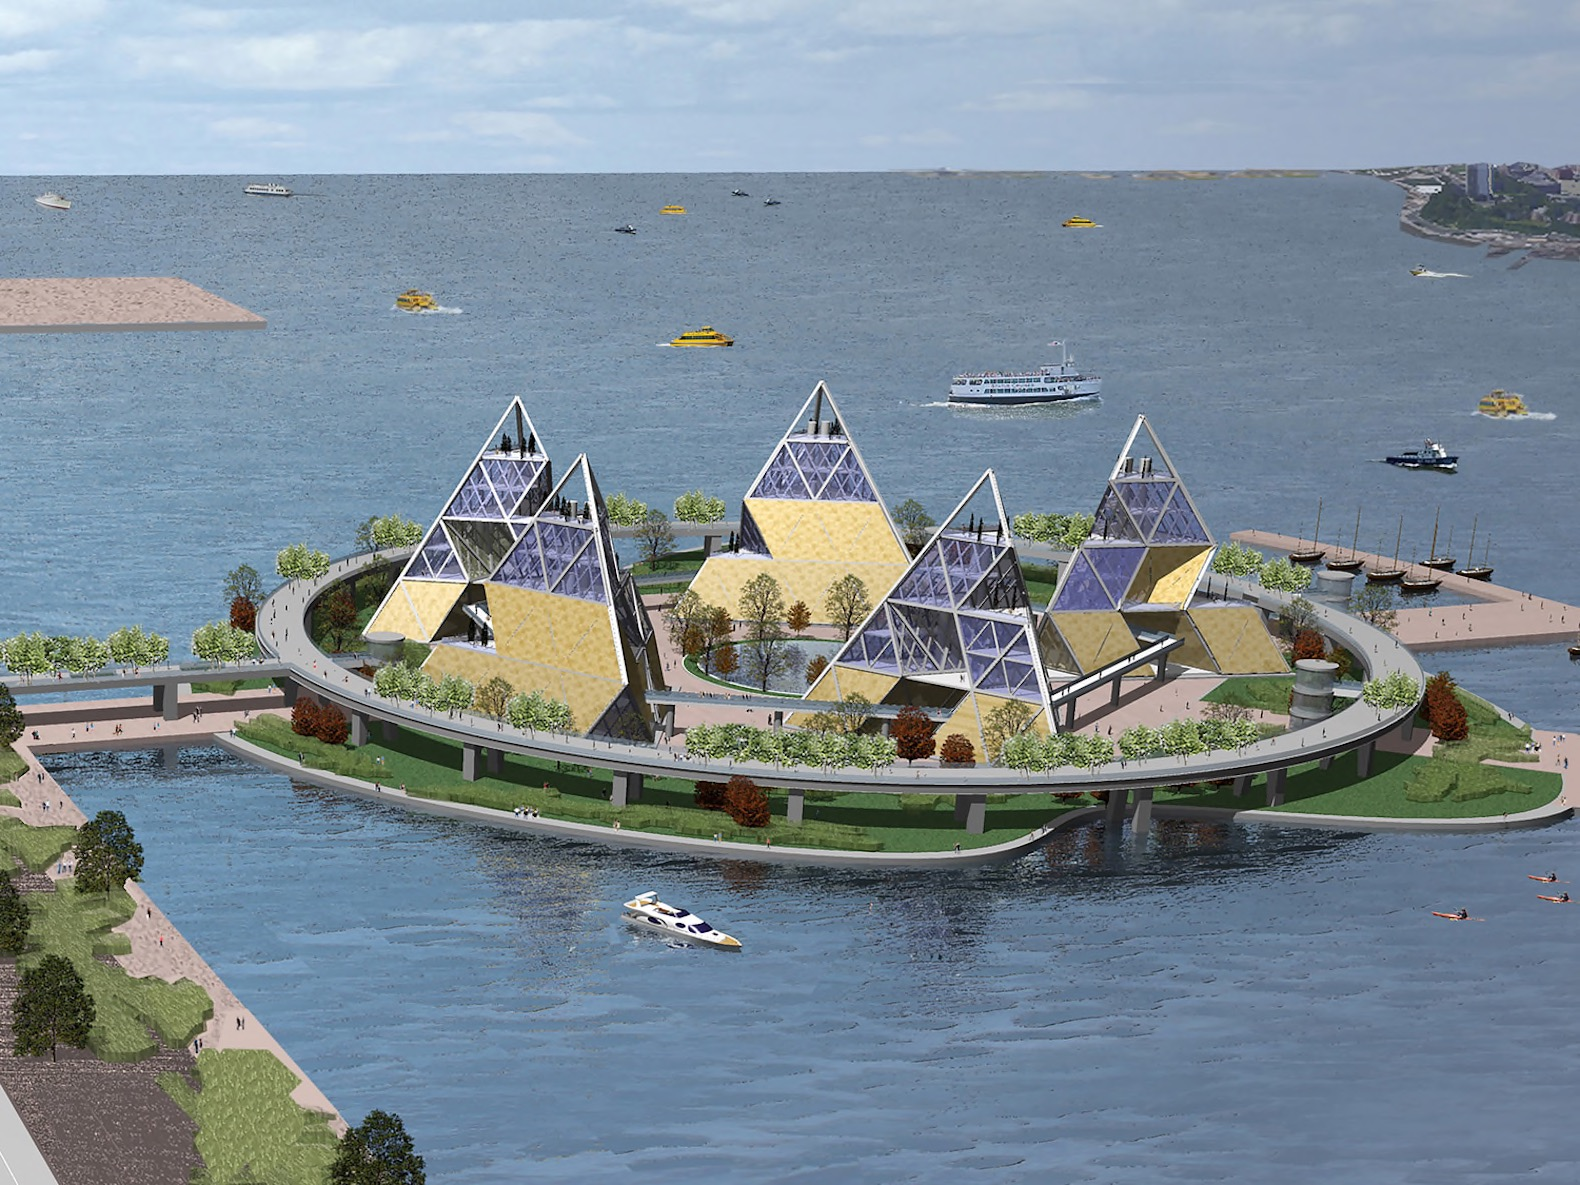 Proposed floating island with pyramids connects the High Line to the Hudson River